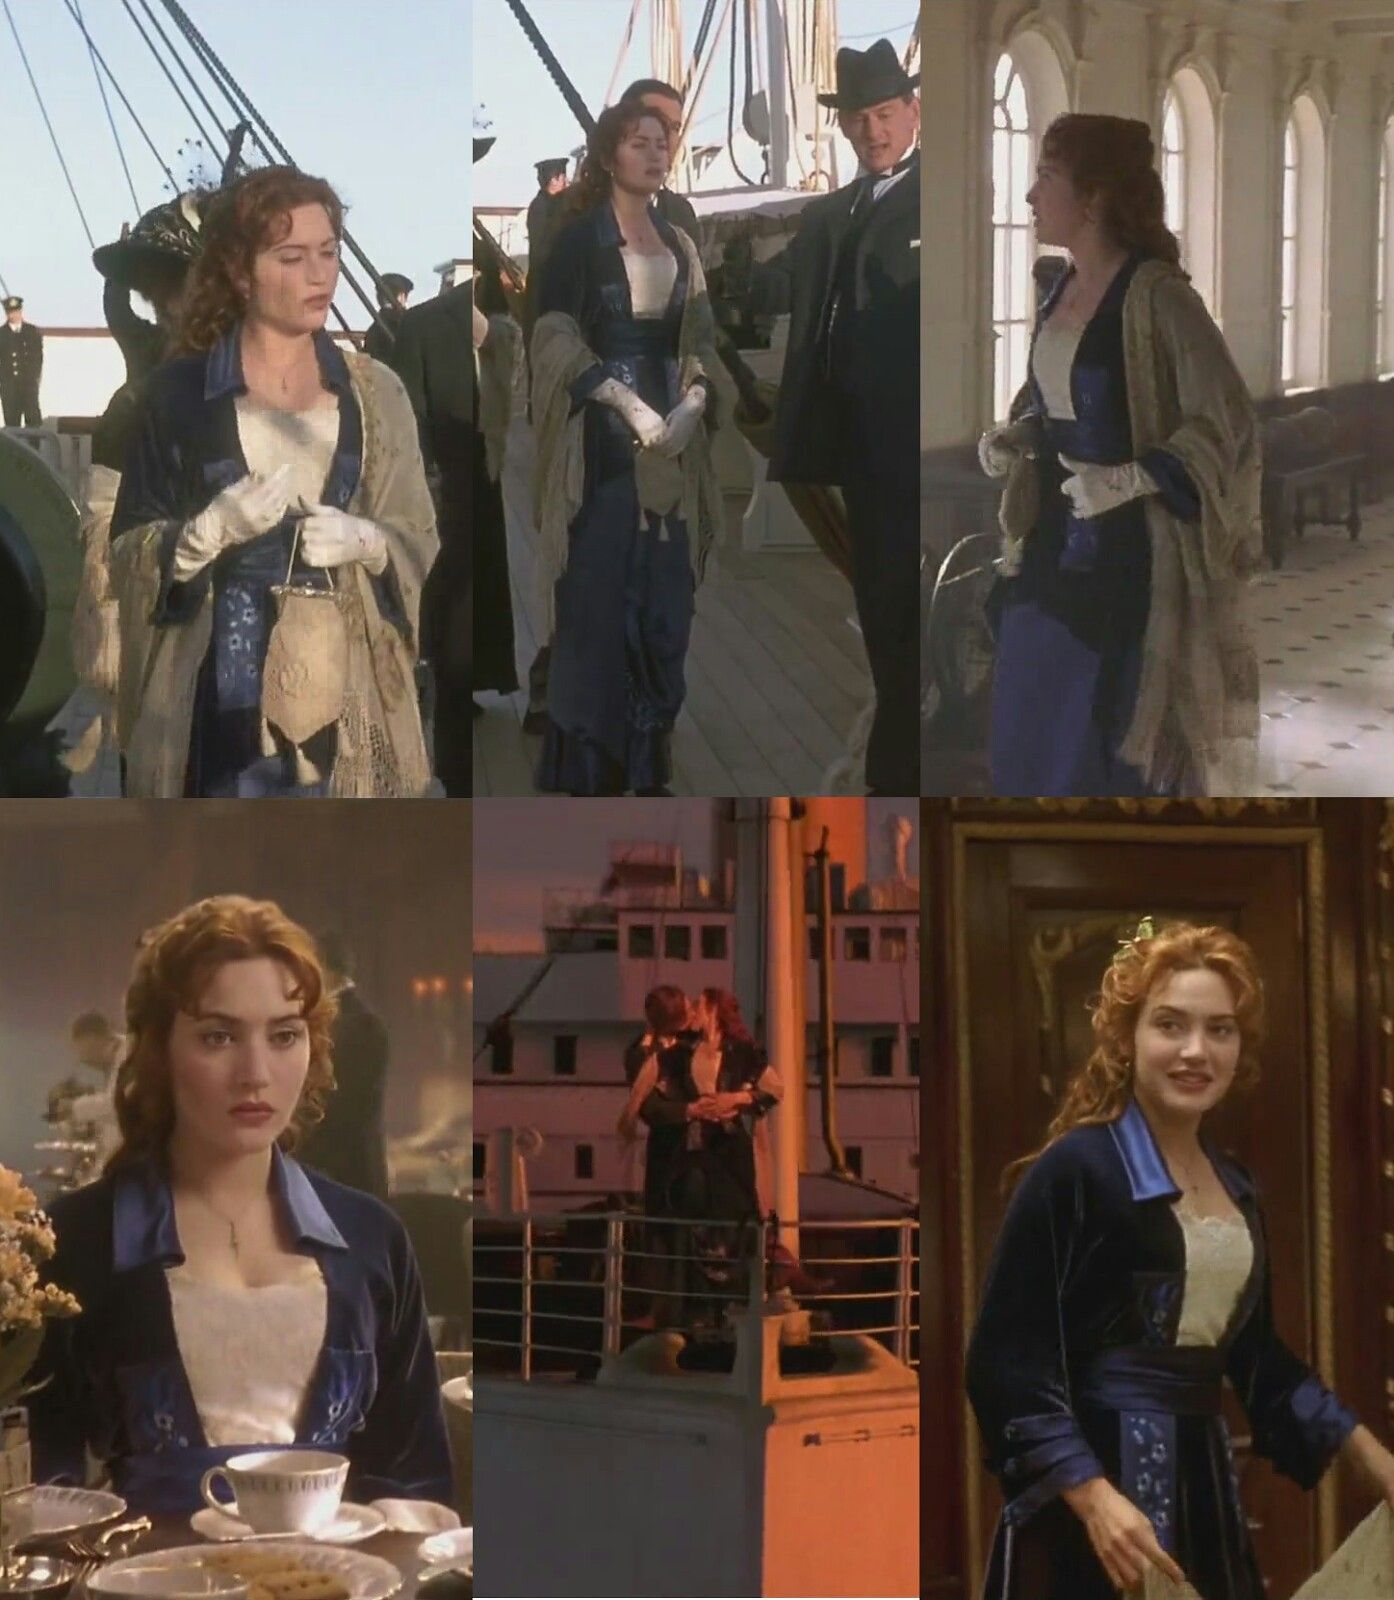 Pin by All Things Girly on Titanic (With images) Titanic